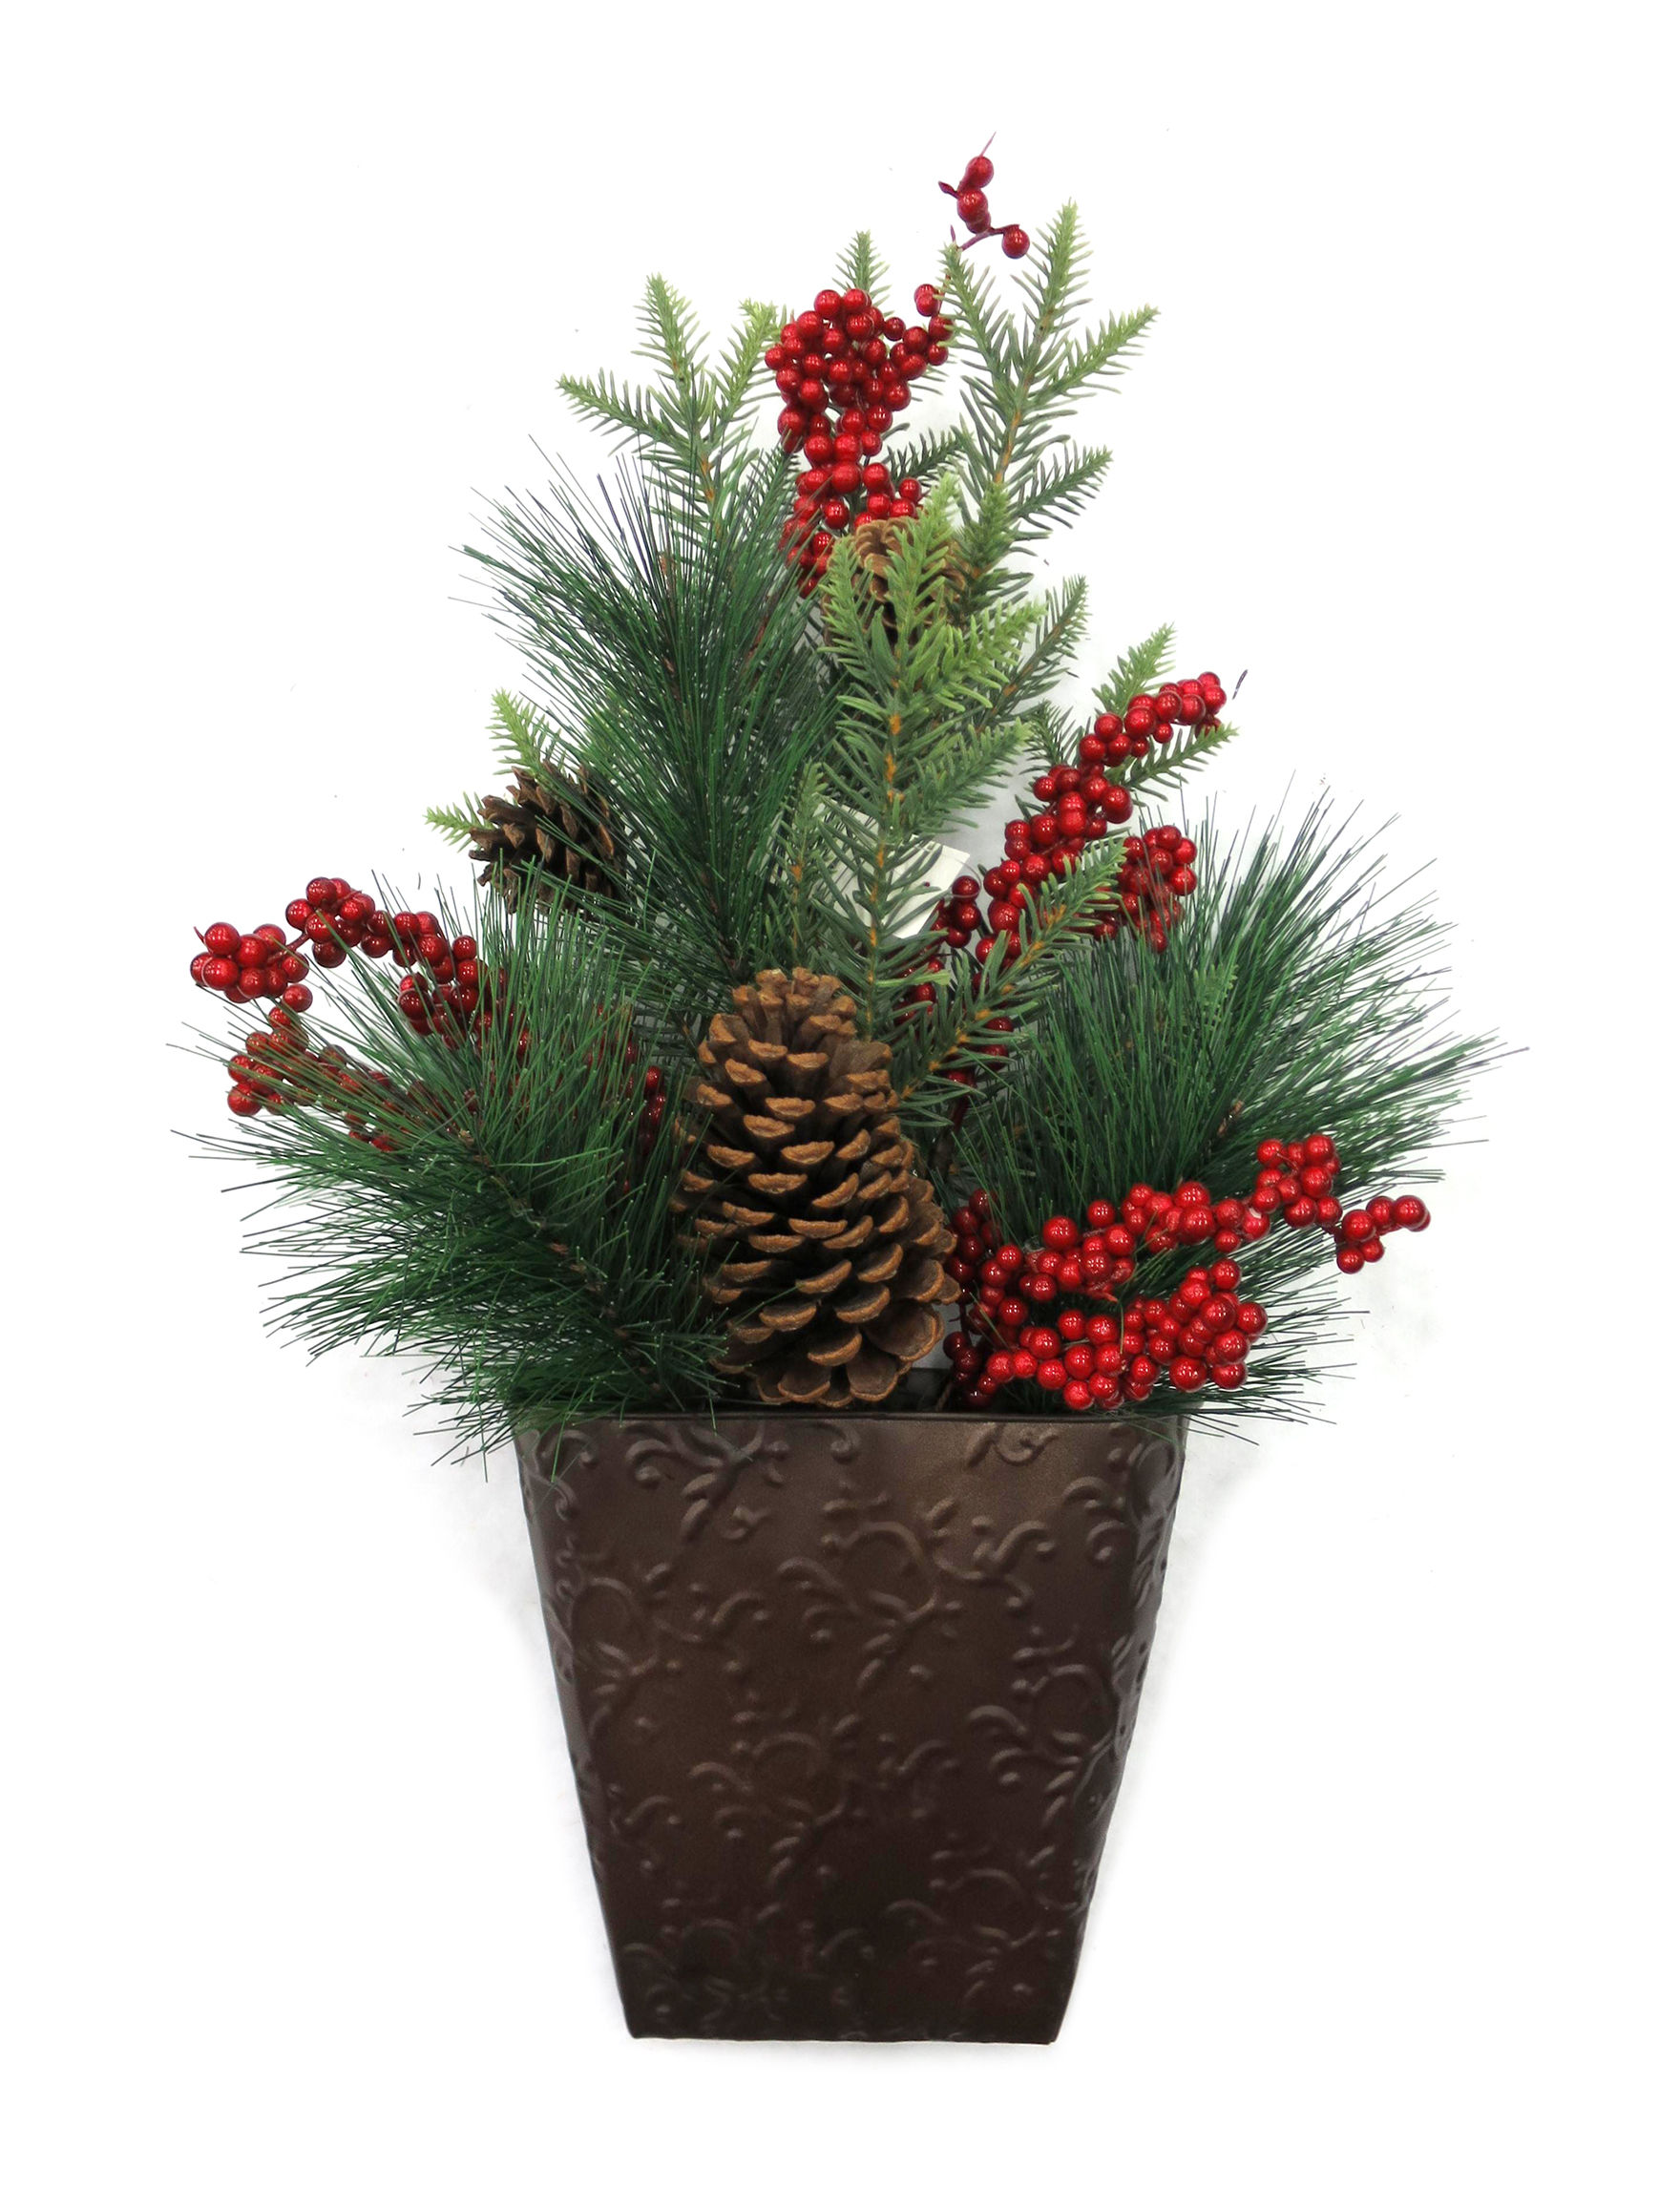 Evernoble Limit Green / Red Faux Plants Holiday Decor